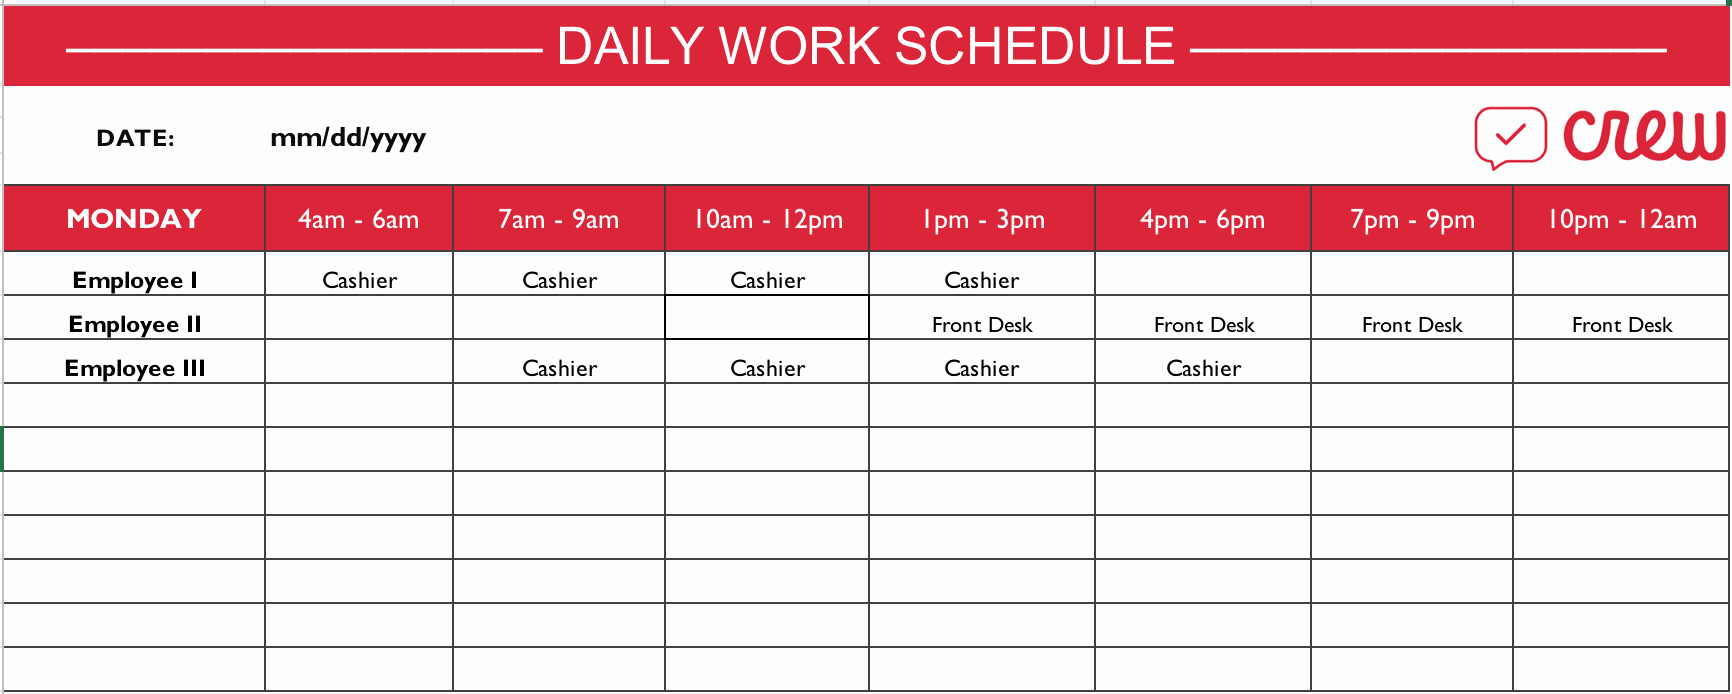 Daily Work Schedule Template Free Daily Work Schedule Template Crew To Employee Schedule Templates